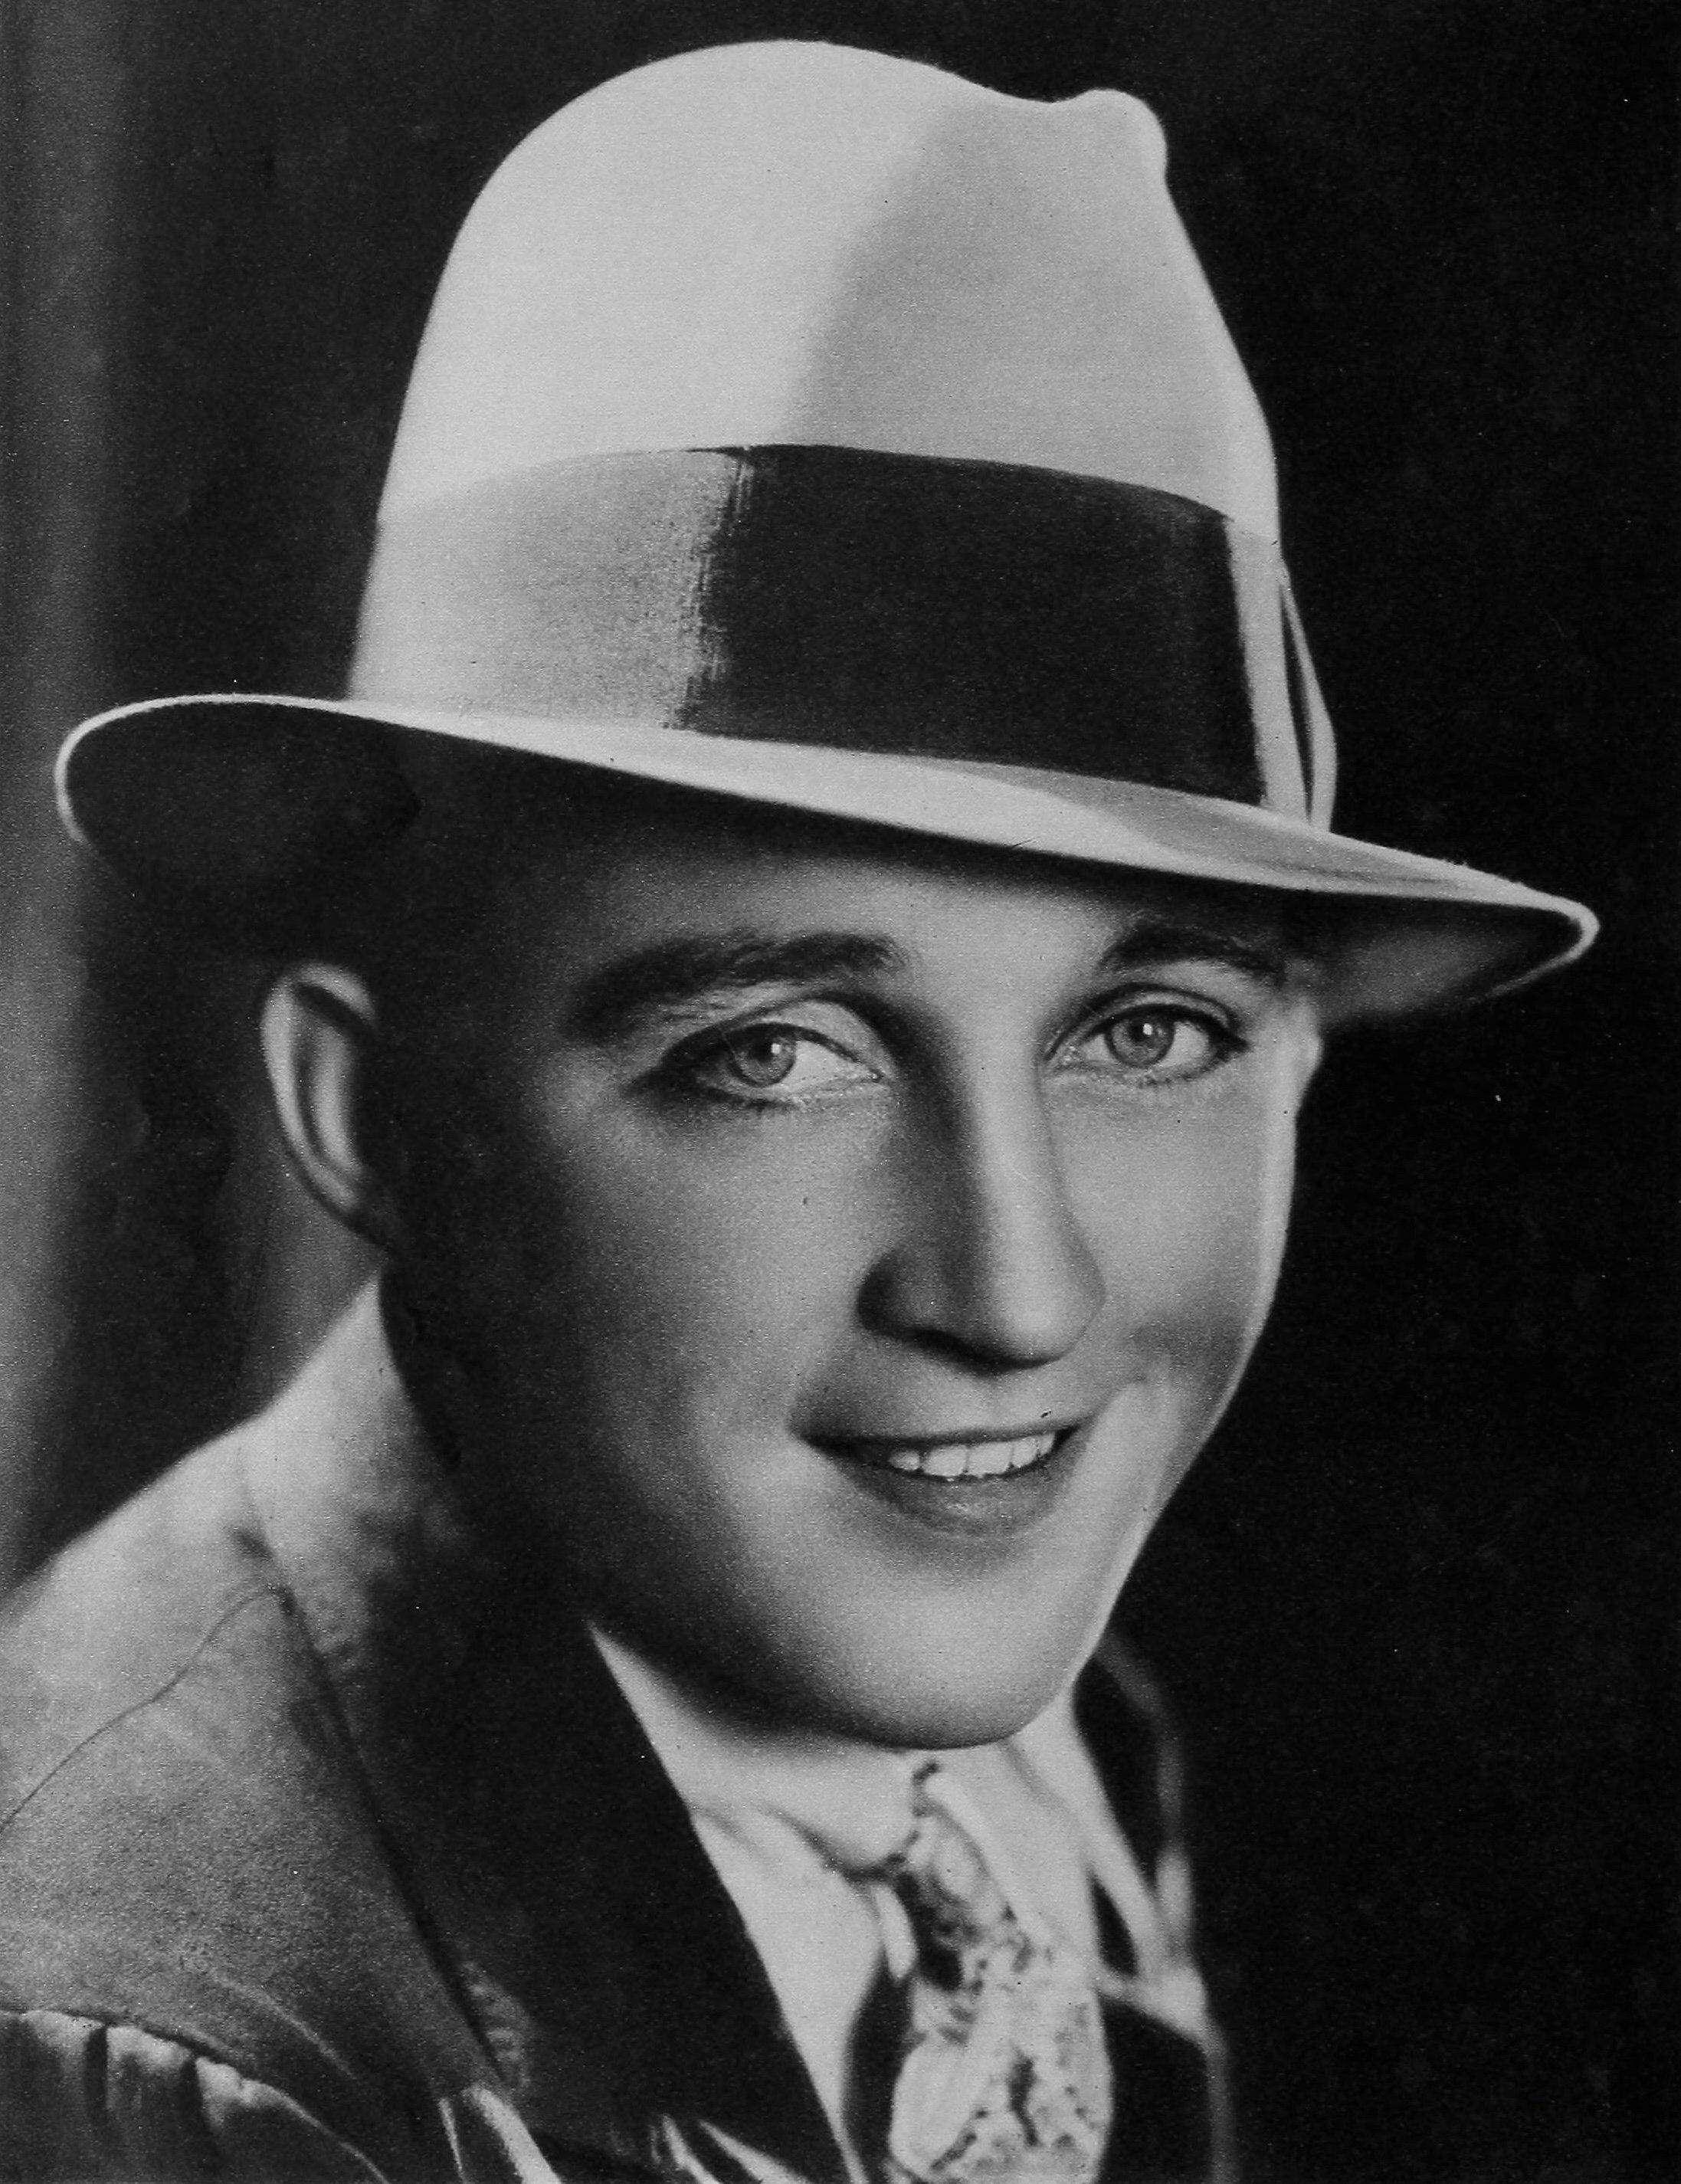 Bing Crosby in 1932. | Source: Wikimedia Commons